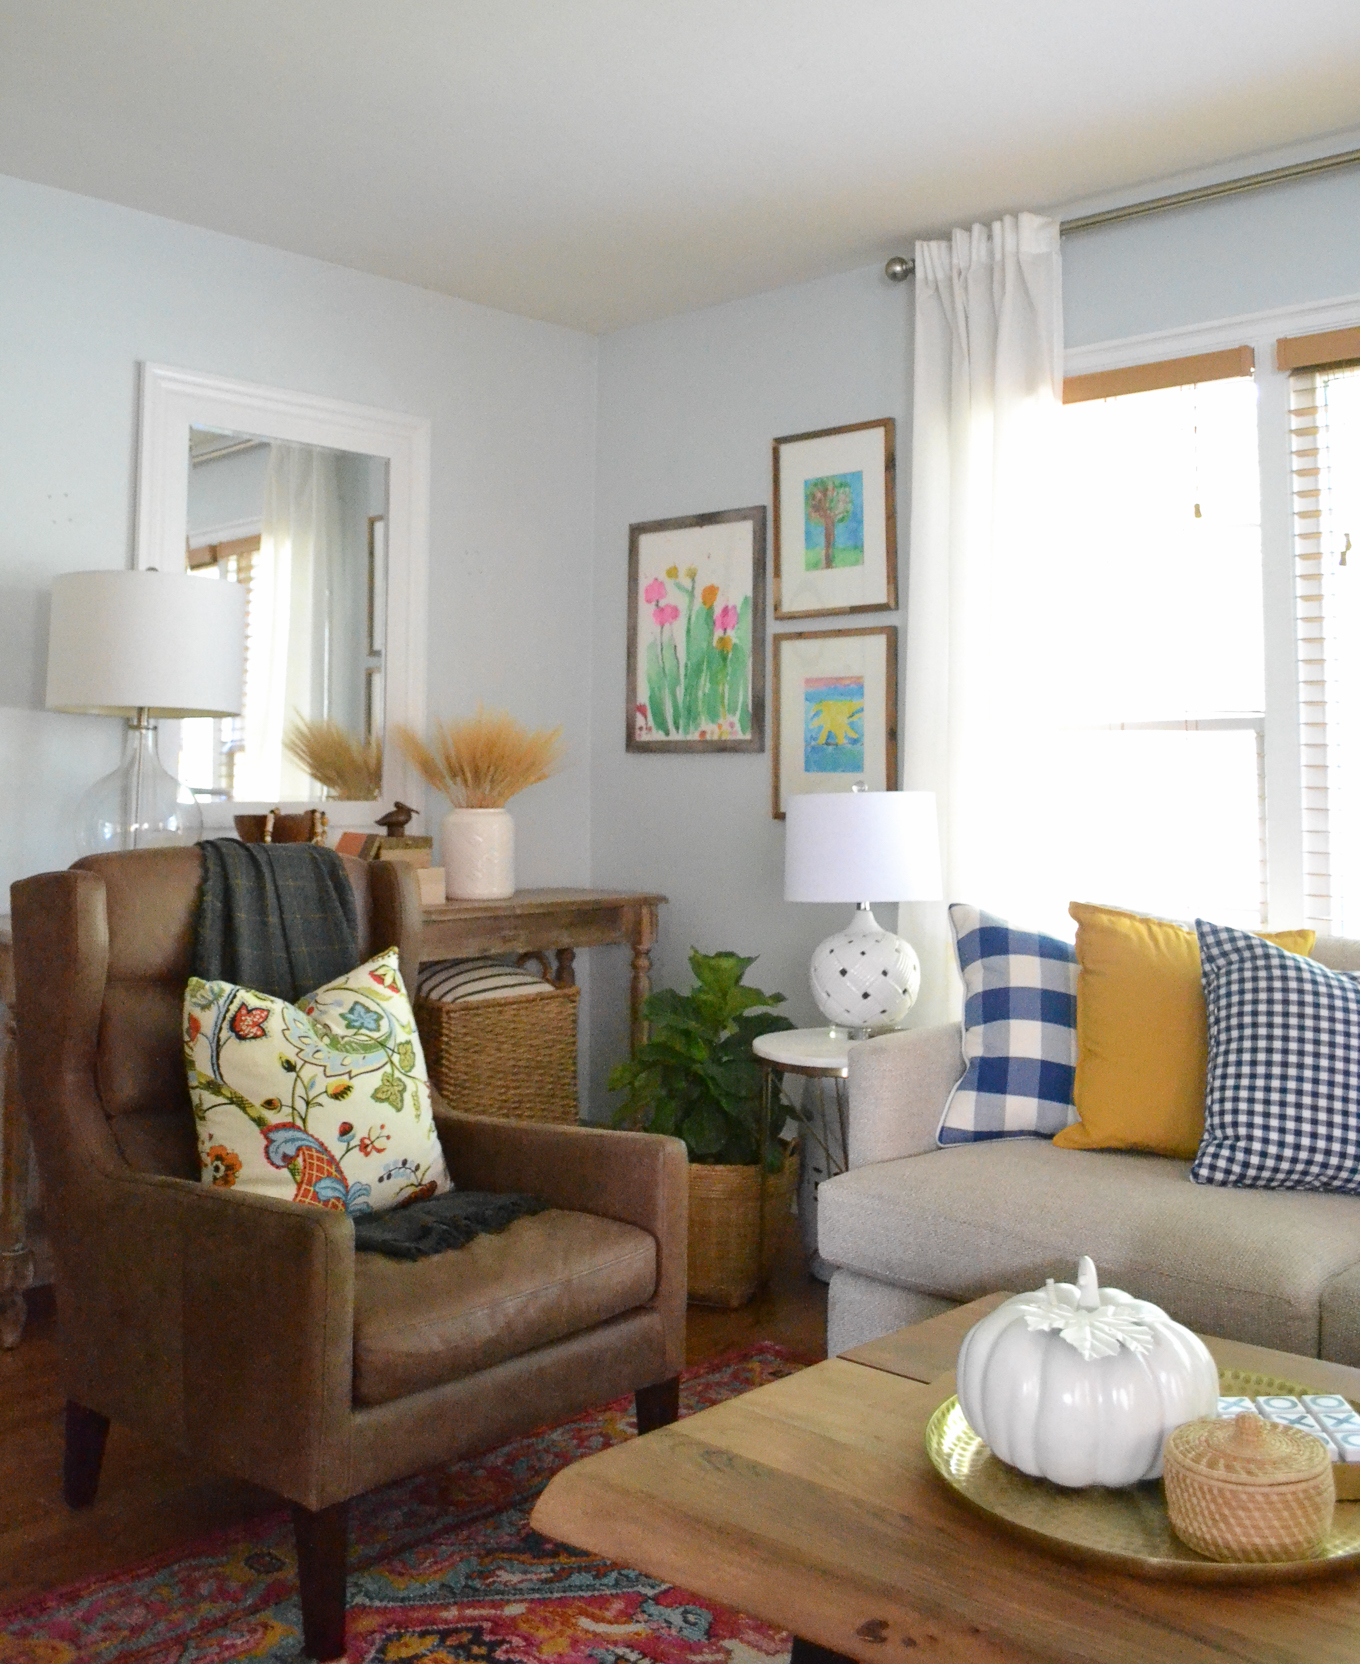 decorating ideas in living room home decor for fall balancing and believe it or not the baskets that were brought into plant on coffee table end all things my laws